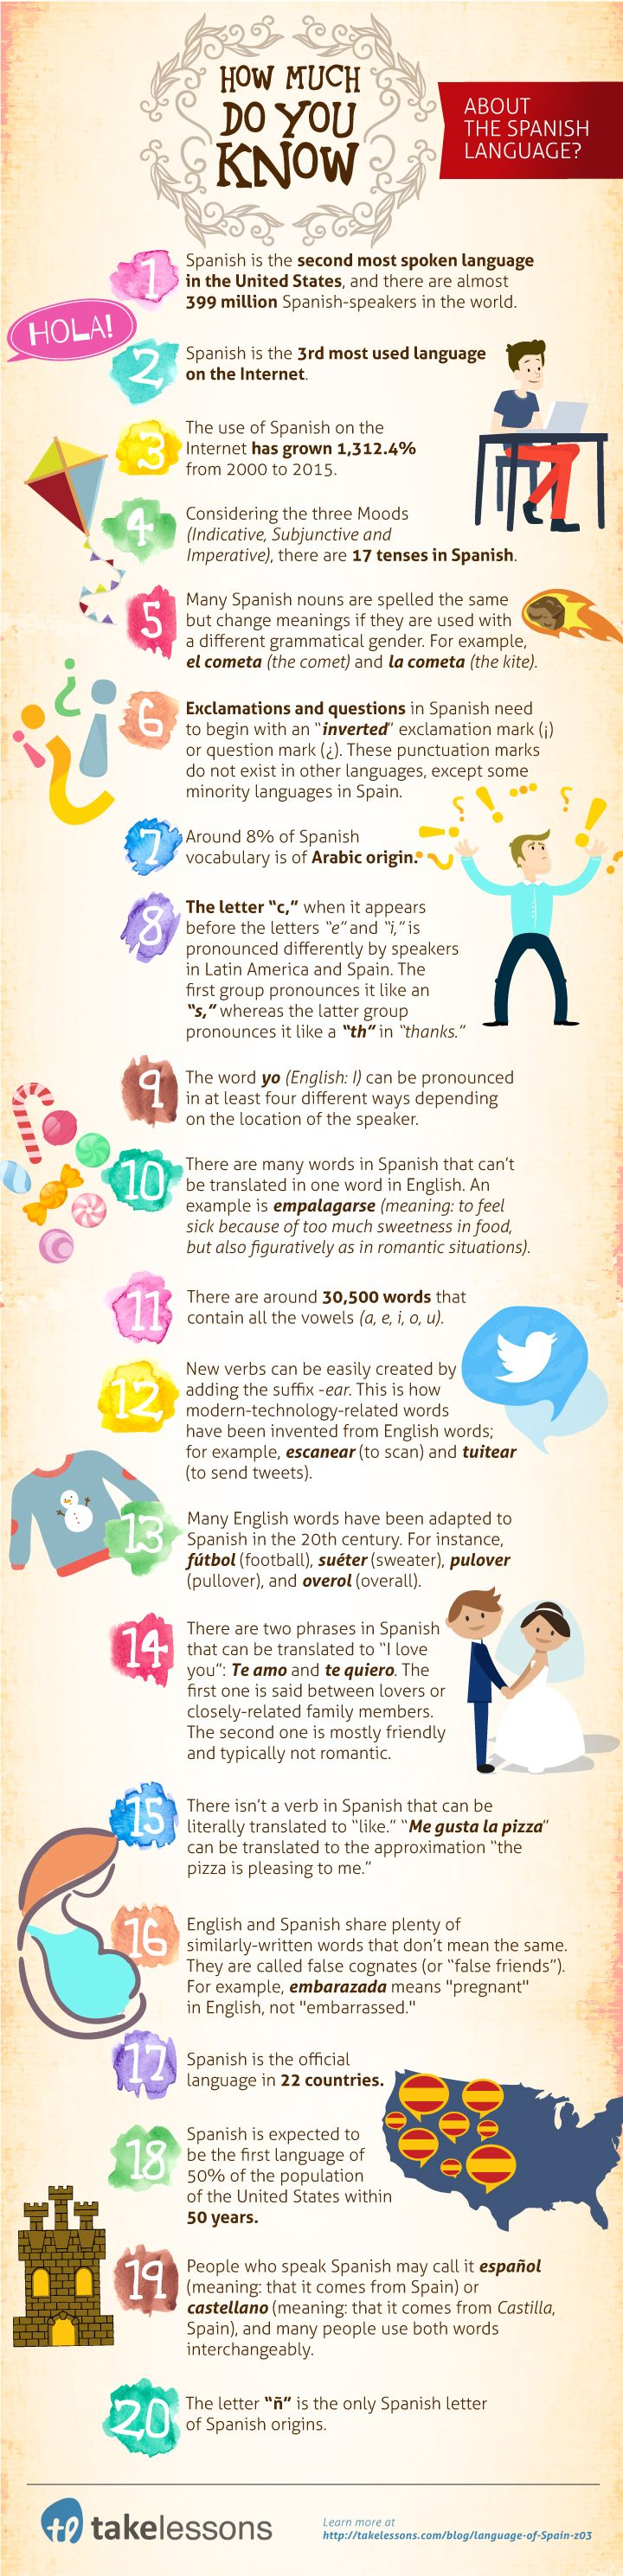 50 Fascinating Facts About the Spanish Language [Infographic] http://takelessons.com/blog/language-of-Spain-z03?utm_source=Social&utm_medium=Blog&utm_campaign=Pinterest